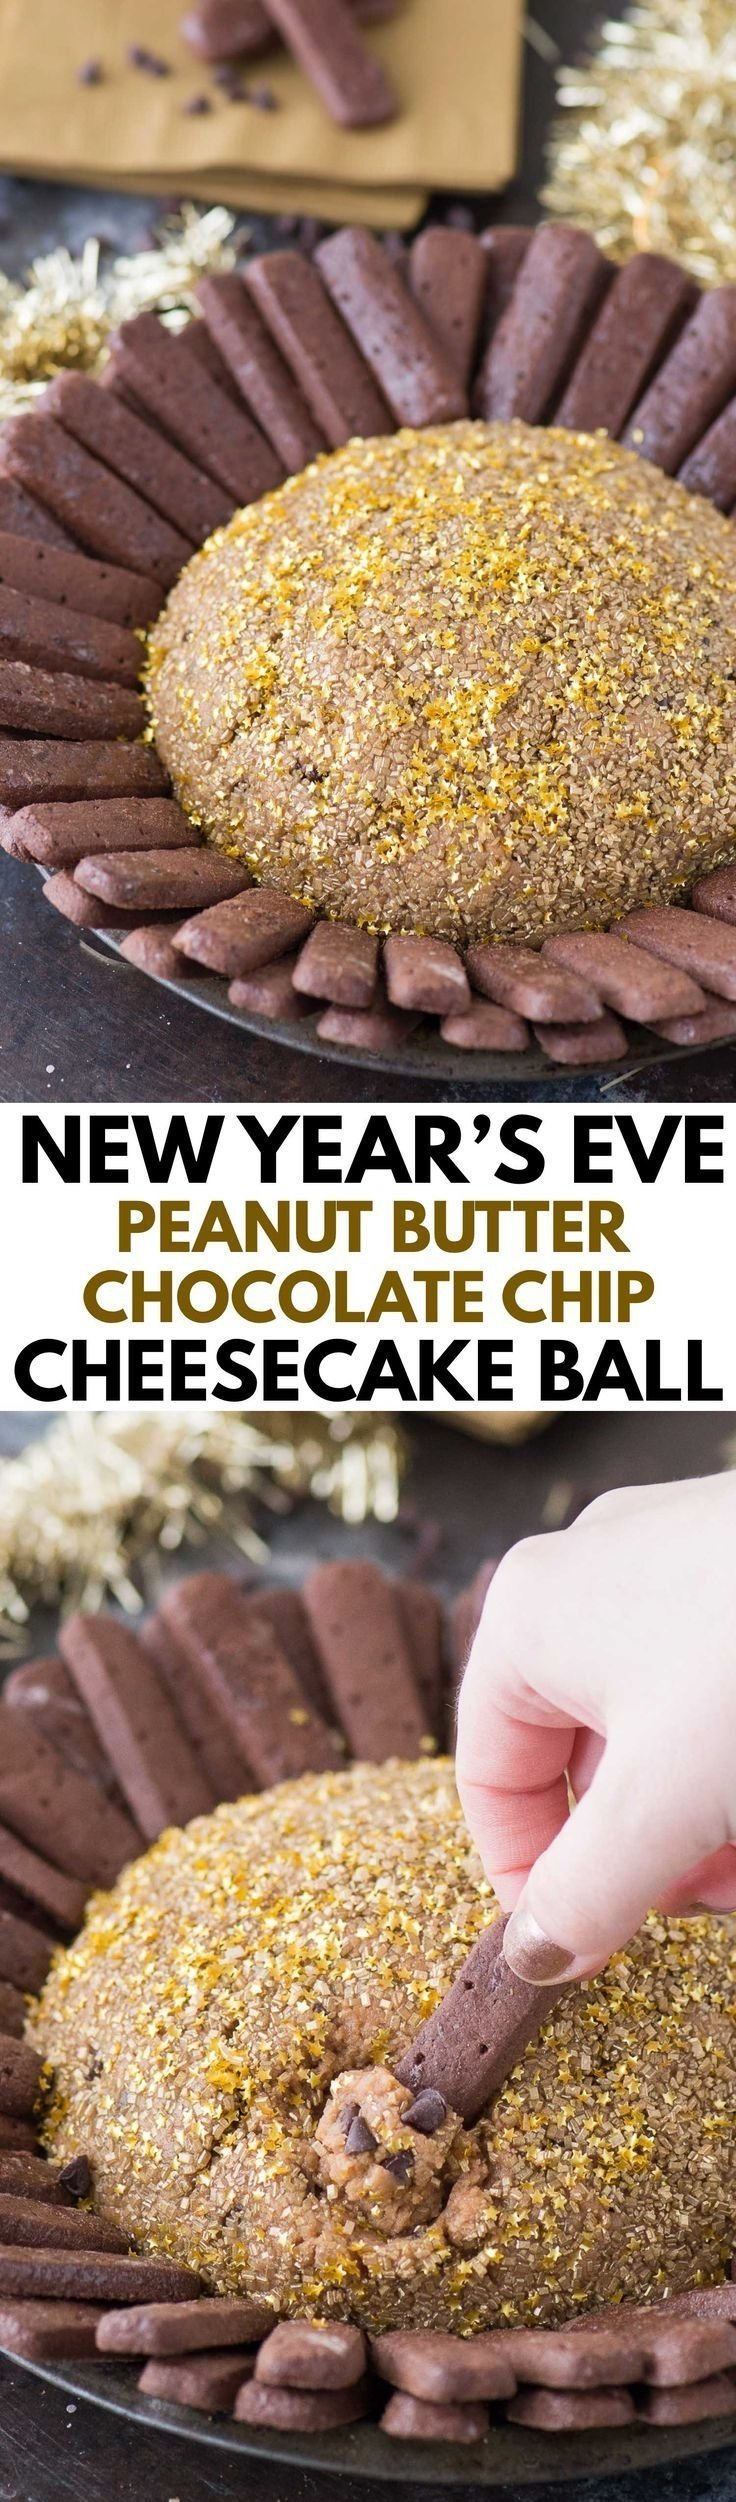 10 Fantastic New Years Eve Snack Ideas 692 best chocolate peanut butter recipes images on pinterest 2021